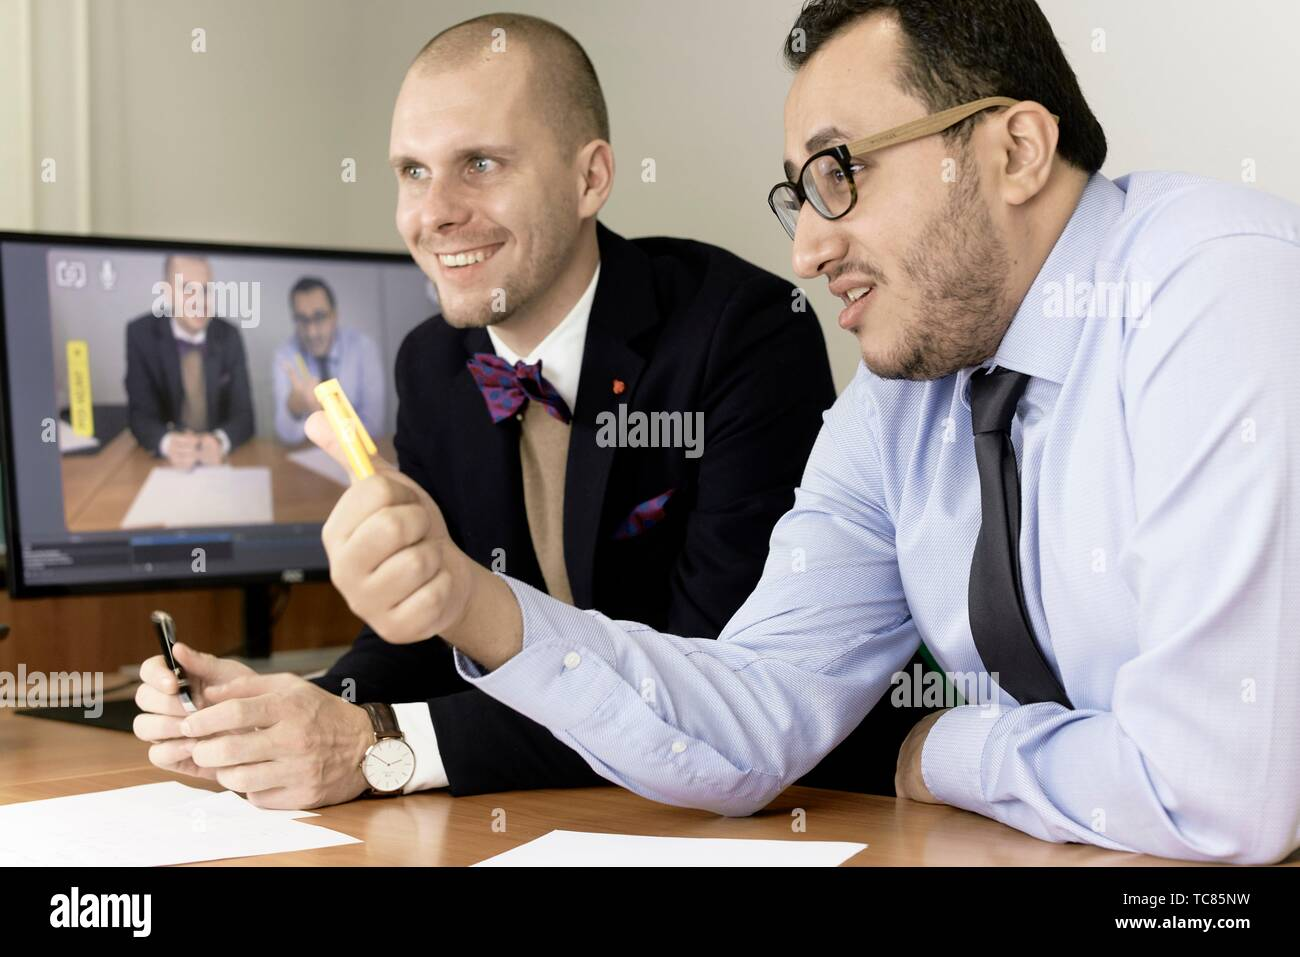 business men at conference, lawyers consulting at online live stream, in Cottbus, Brandenburg, Germany - Stock Image